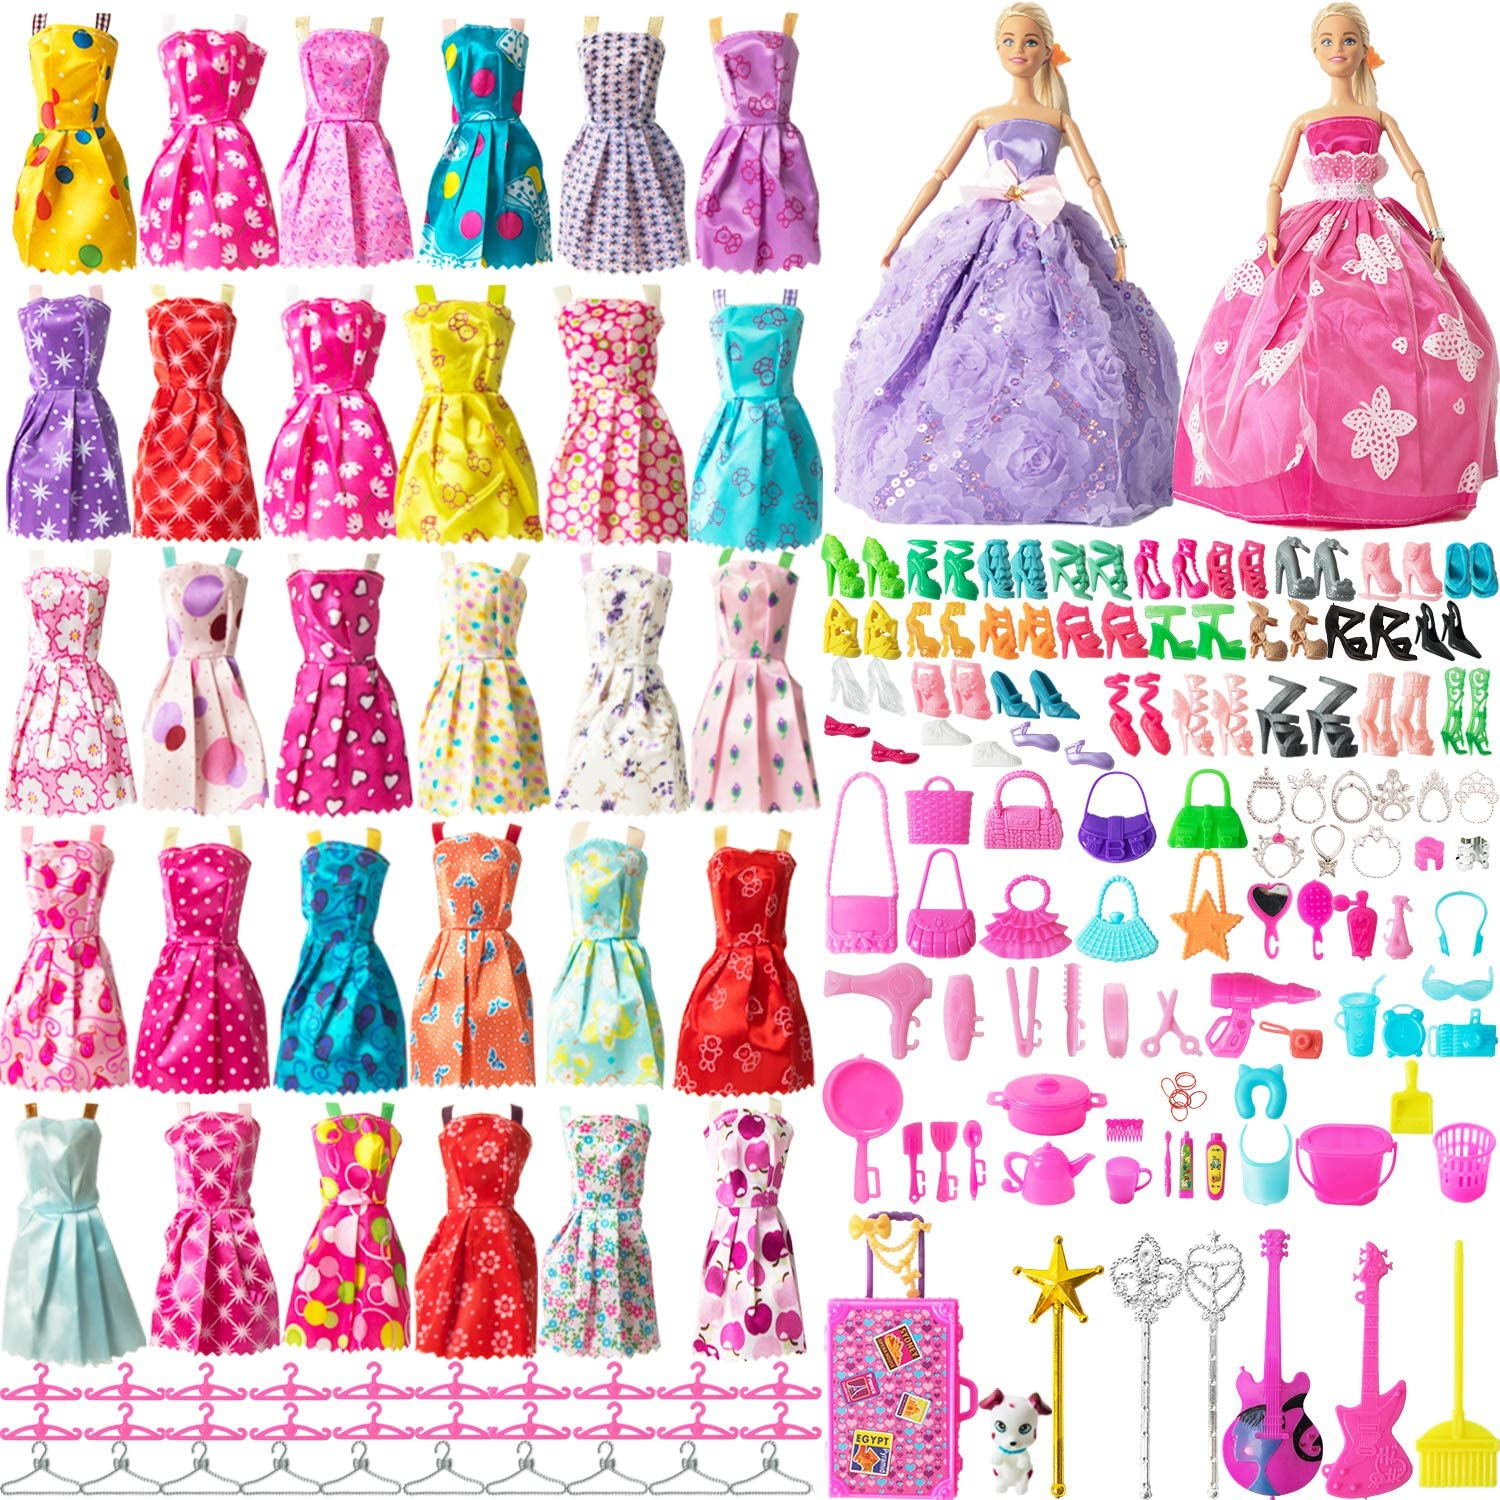 120 Pcs Doll Clothes Party Dress Shoes Bags Necklace Toy Accessory Set Xmas Gift